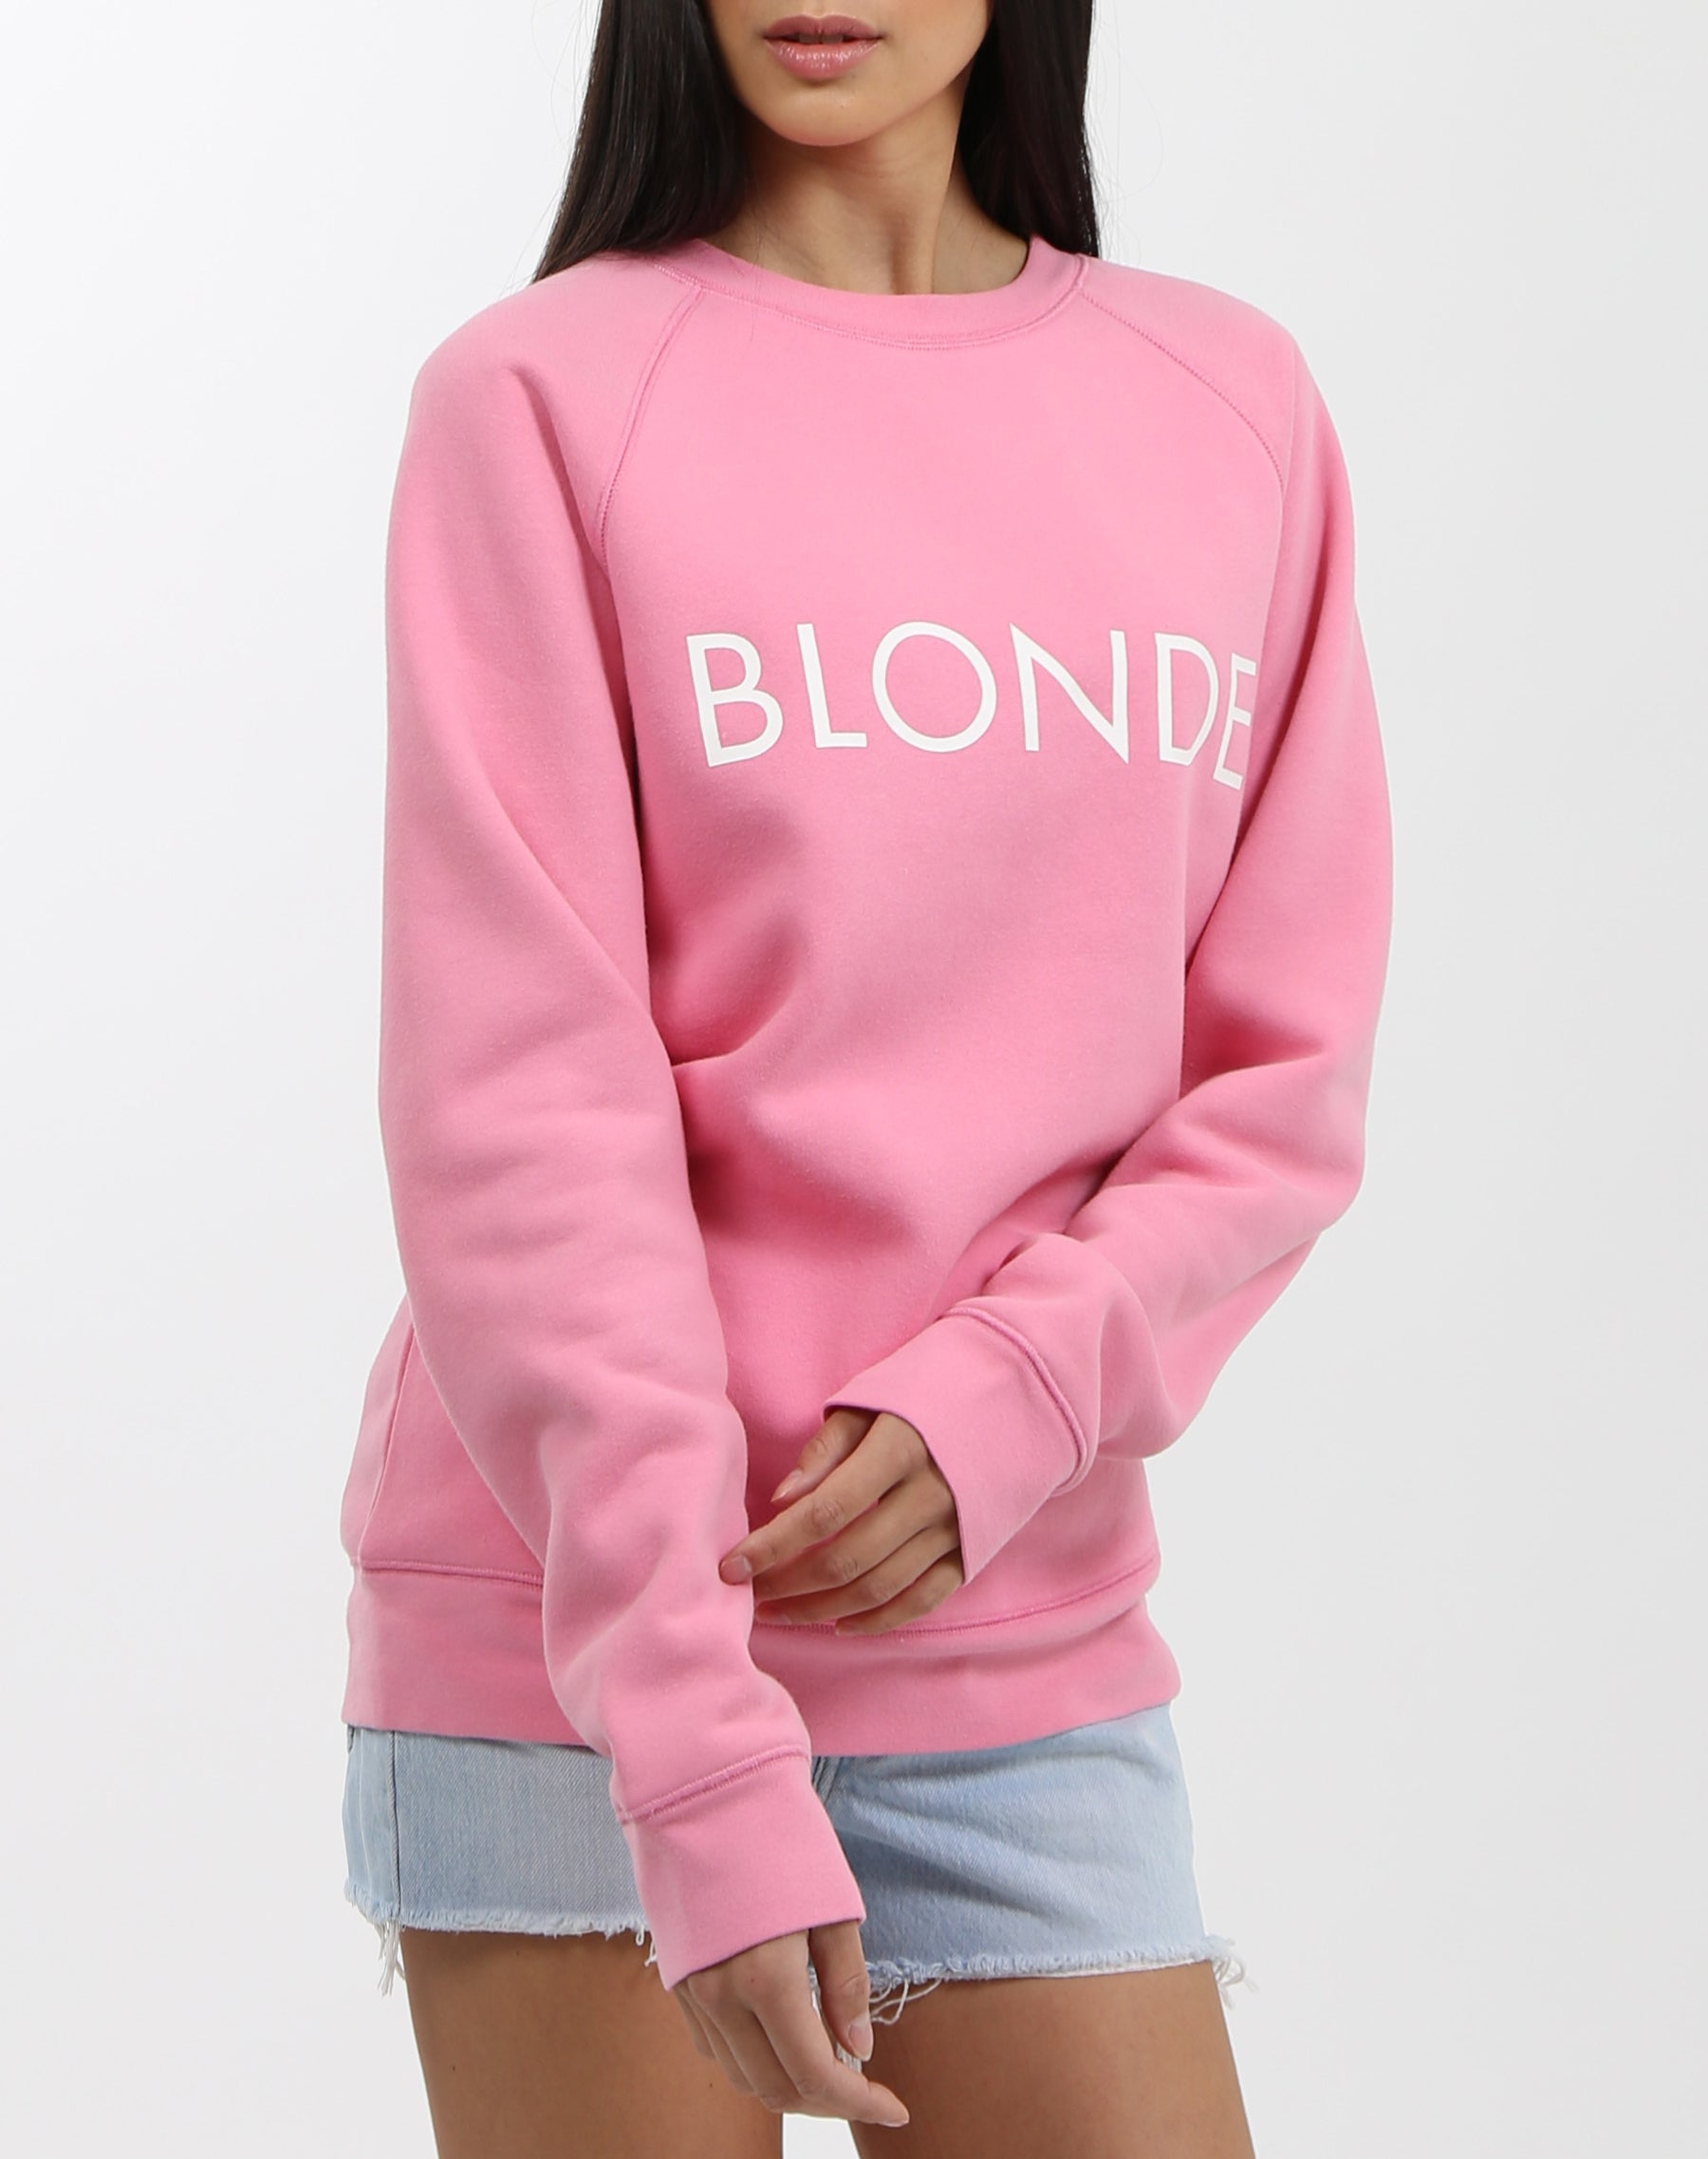 Photo 2 of the Blonde classic crew neck sweatshirt in hot pink by Brunette the Label.